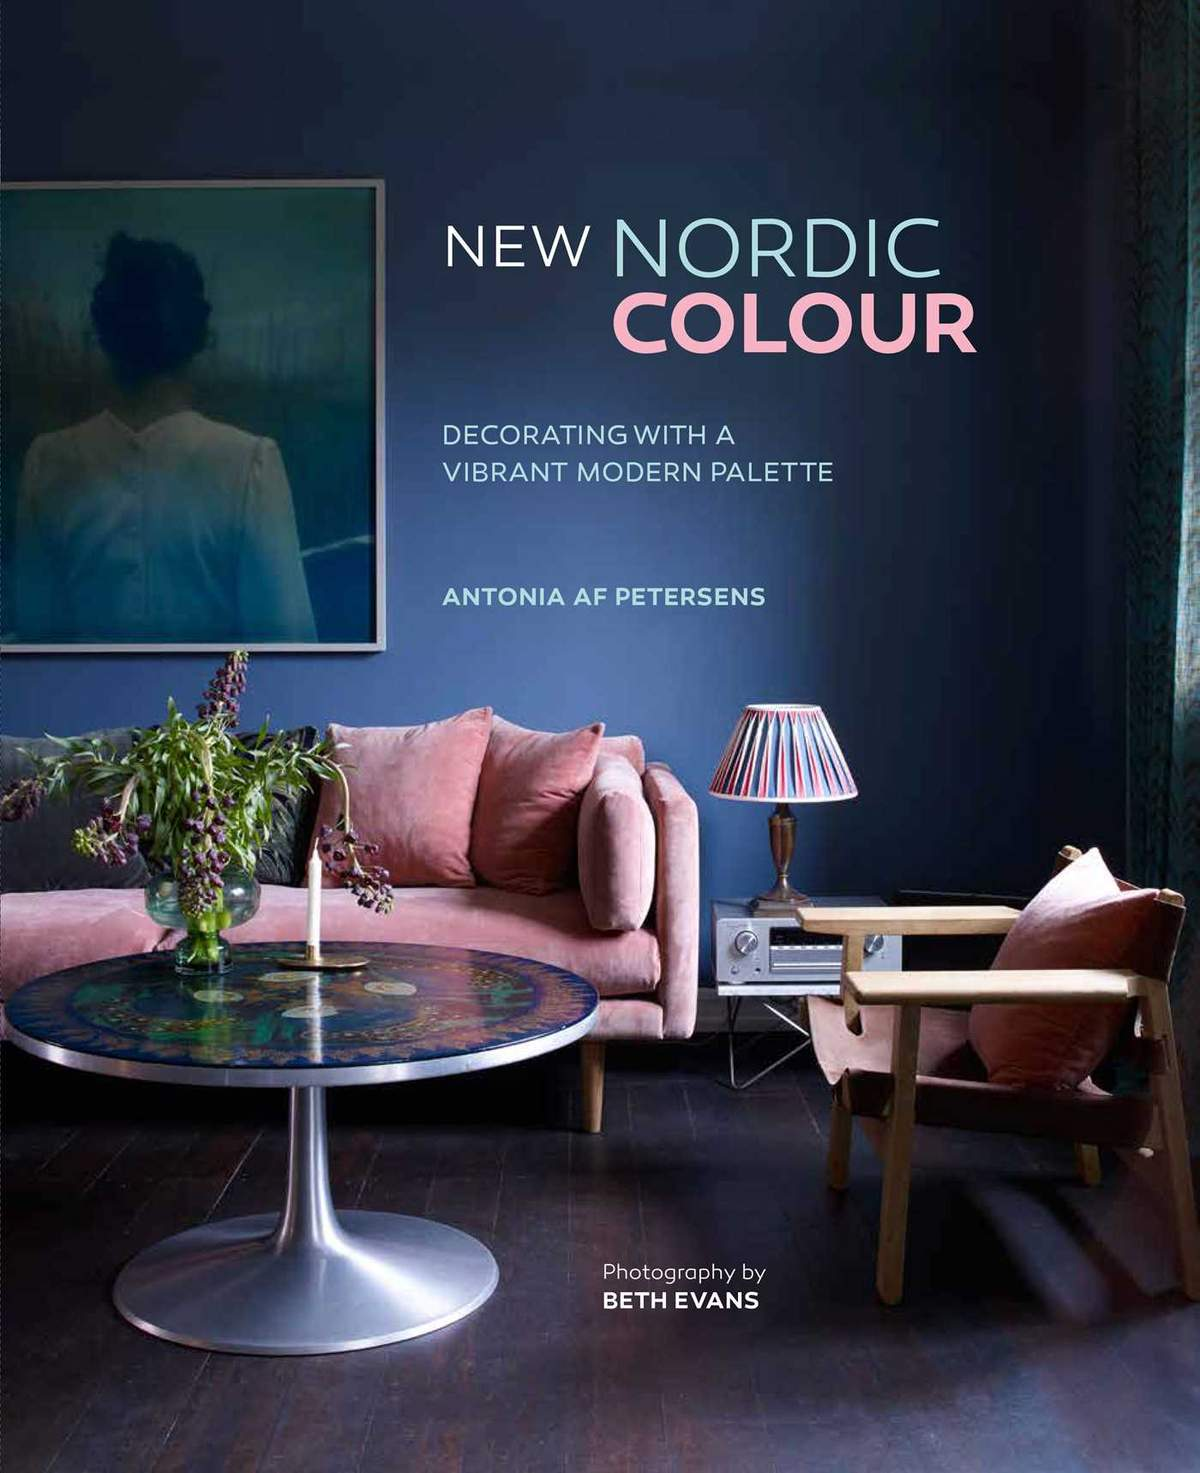 New Nordic Colour: Decorating with a vibrant modern palette by Antonia Af Petersen